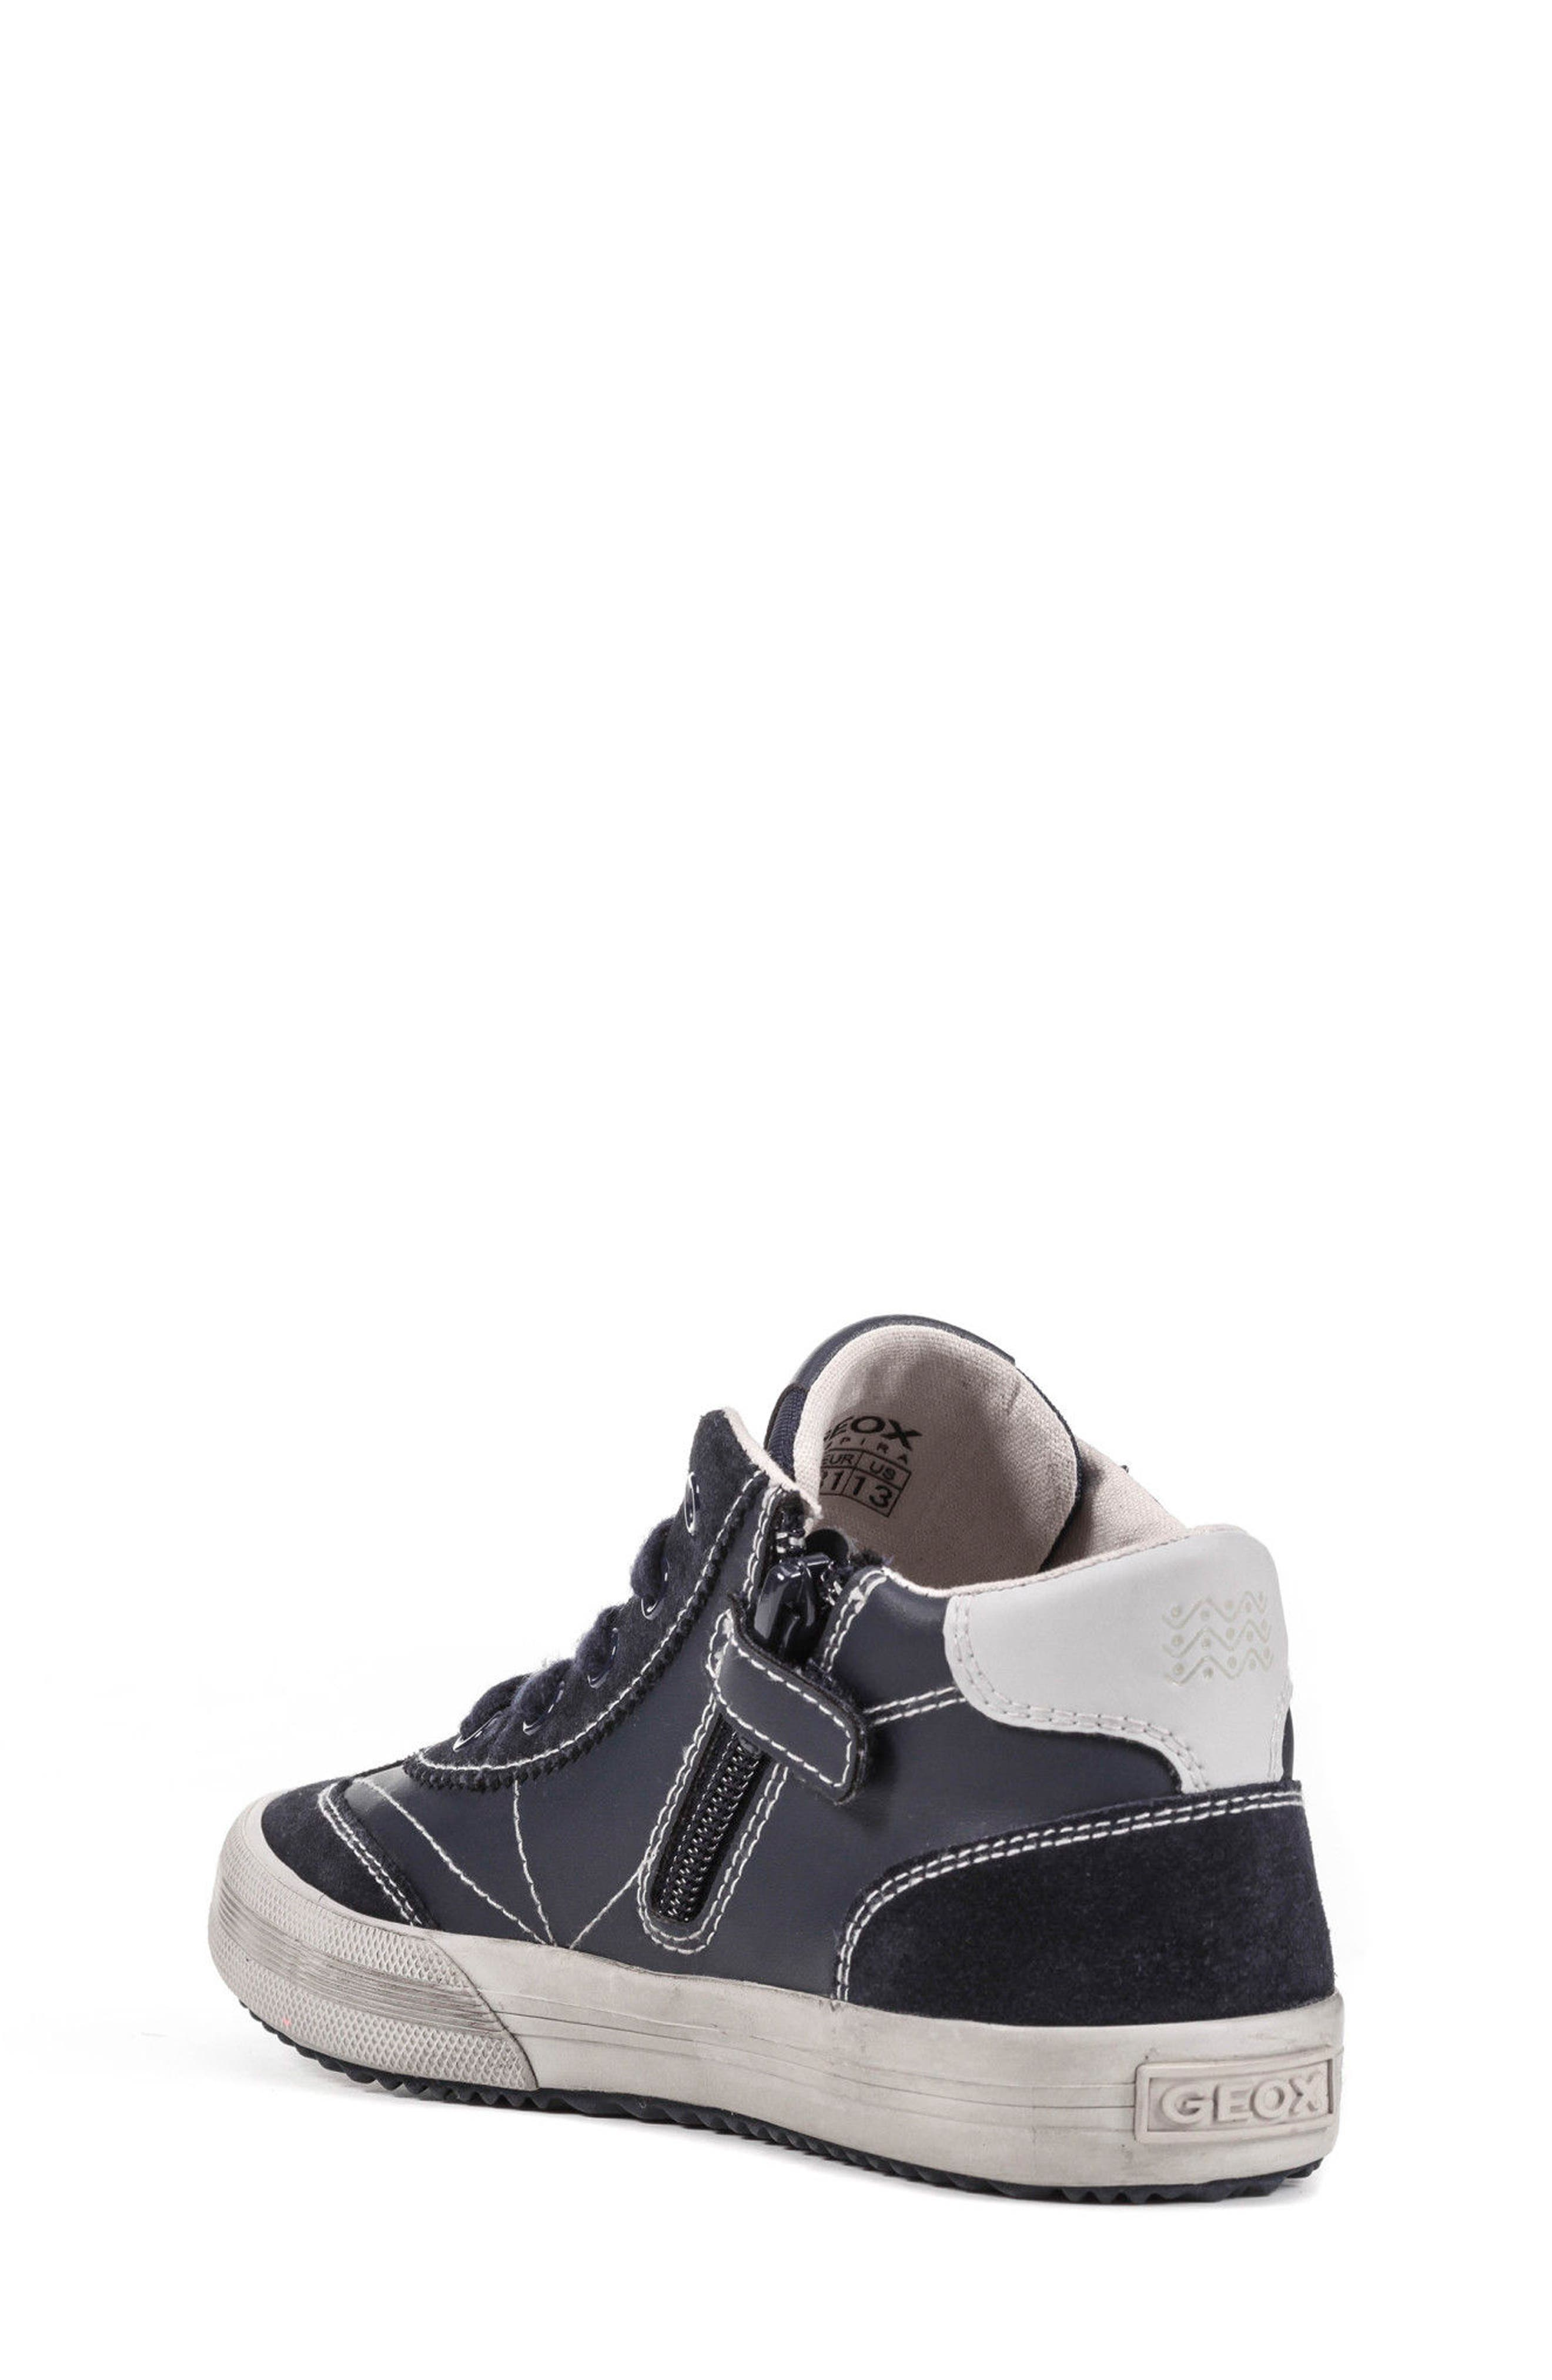 Alternate Image 2  - Geox Alonisso Mid Top Sneaker (Toddler, Little Kid & Big Kid)